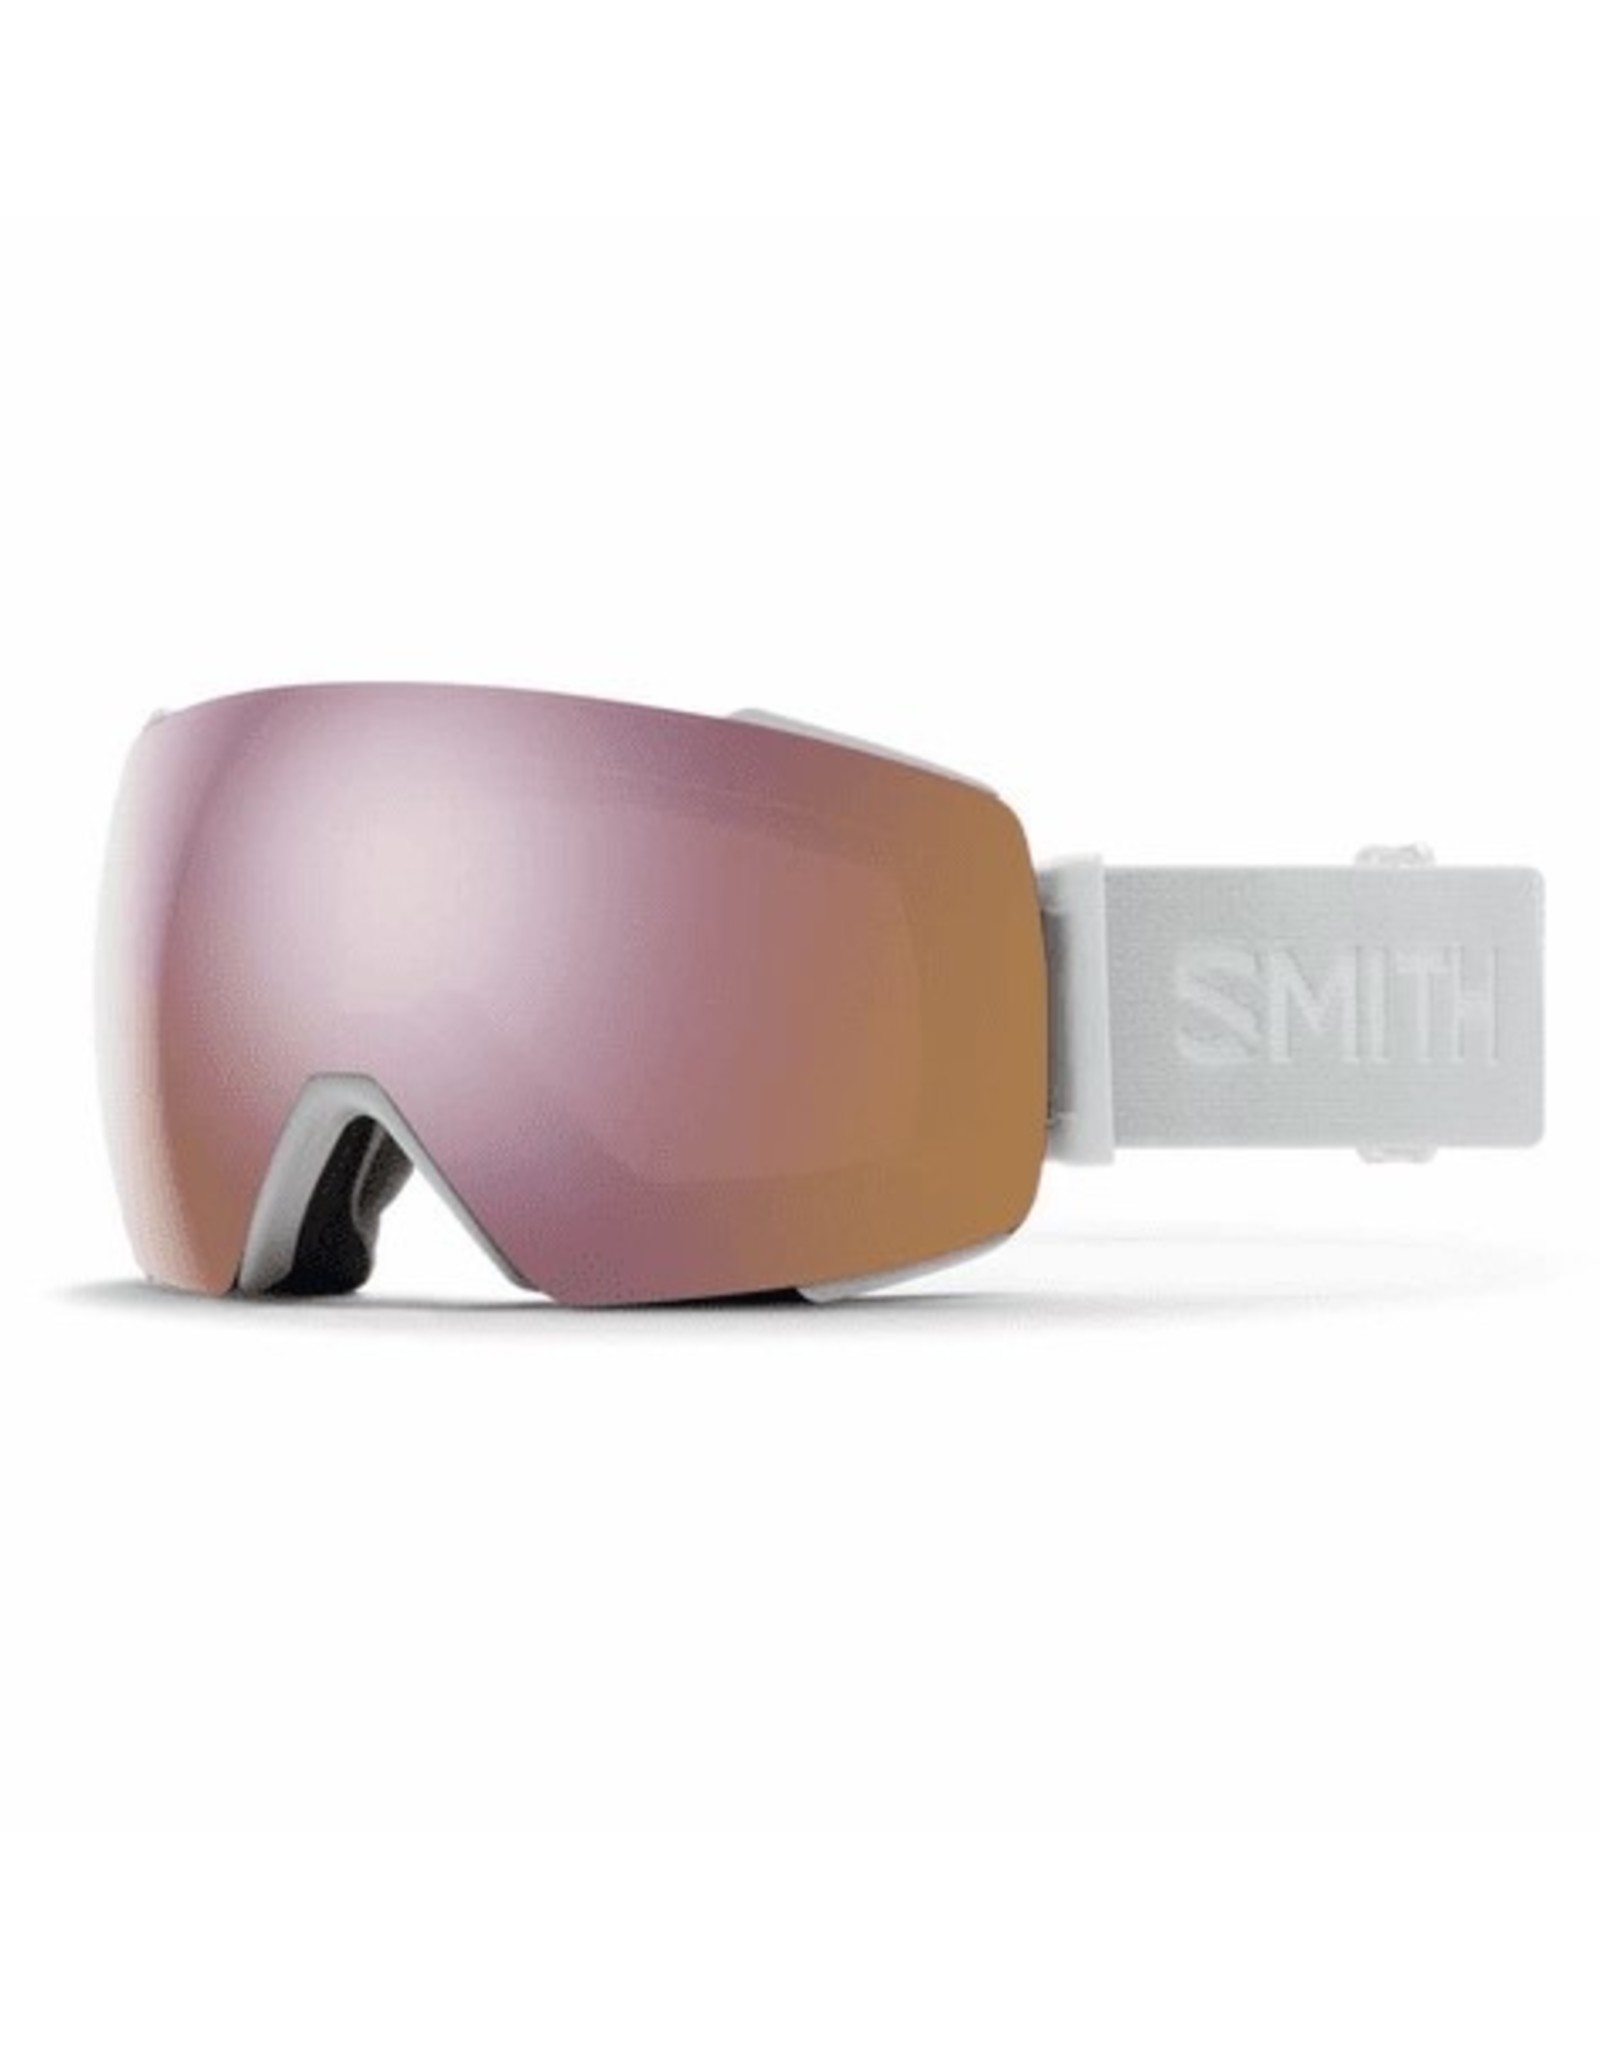 SMITH I/O MAG - White Vapor w/Chromapop Rose Gold and Storm Rose Flash